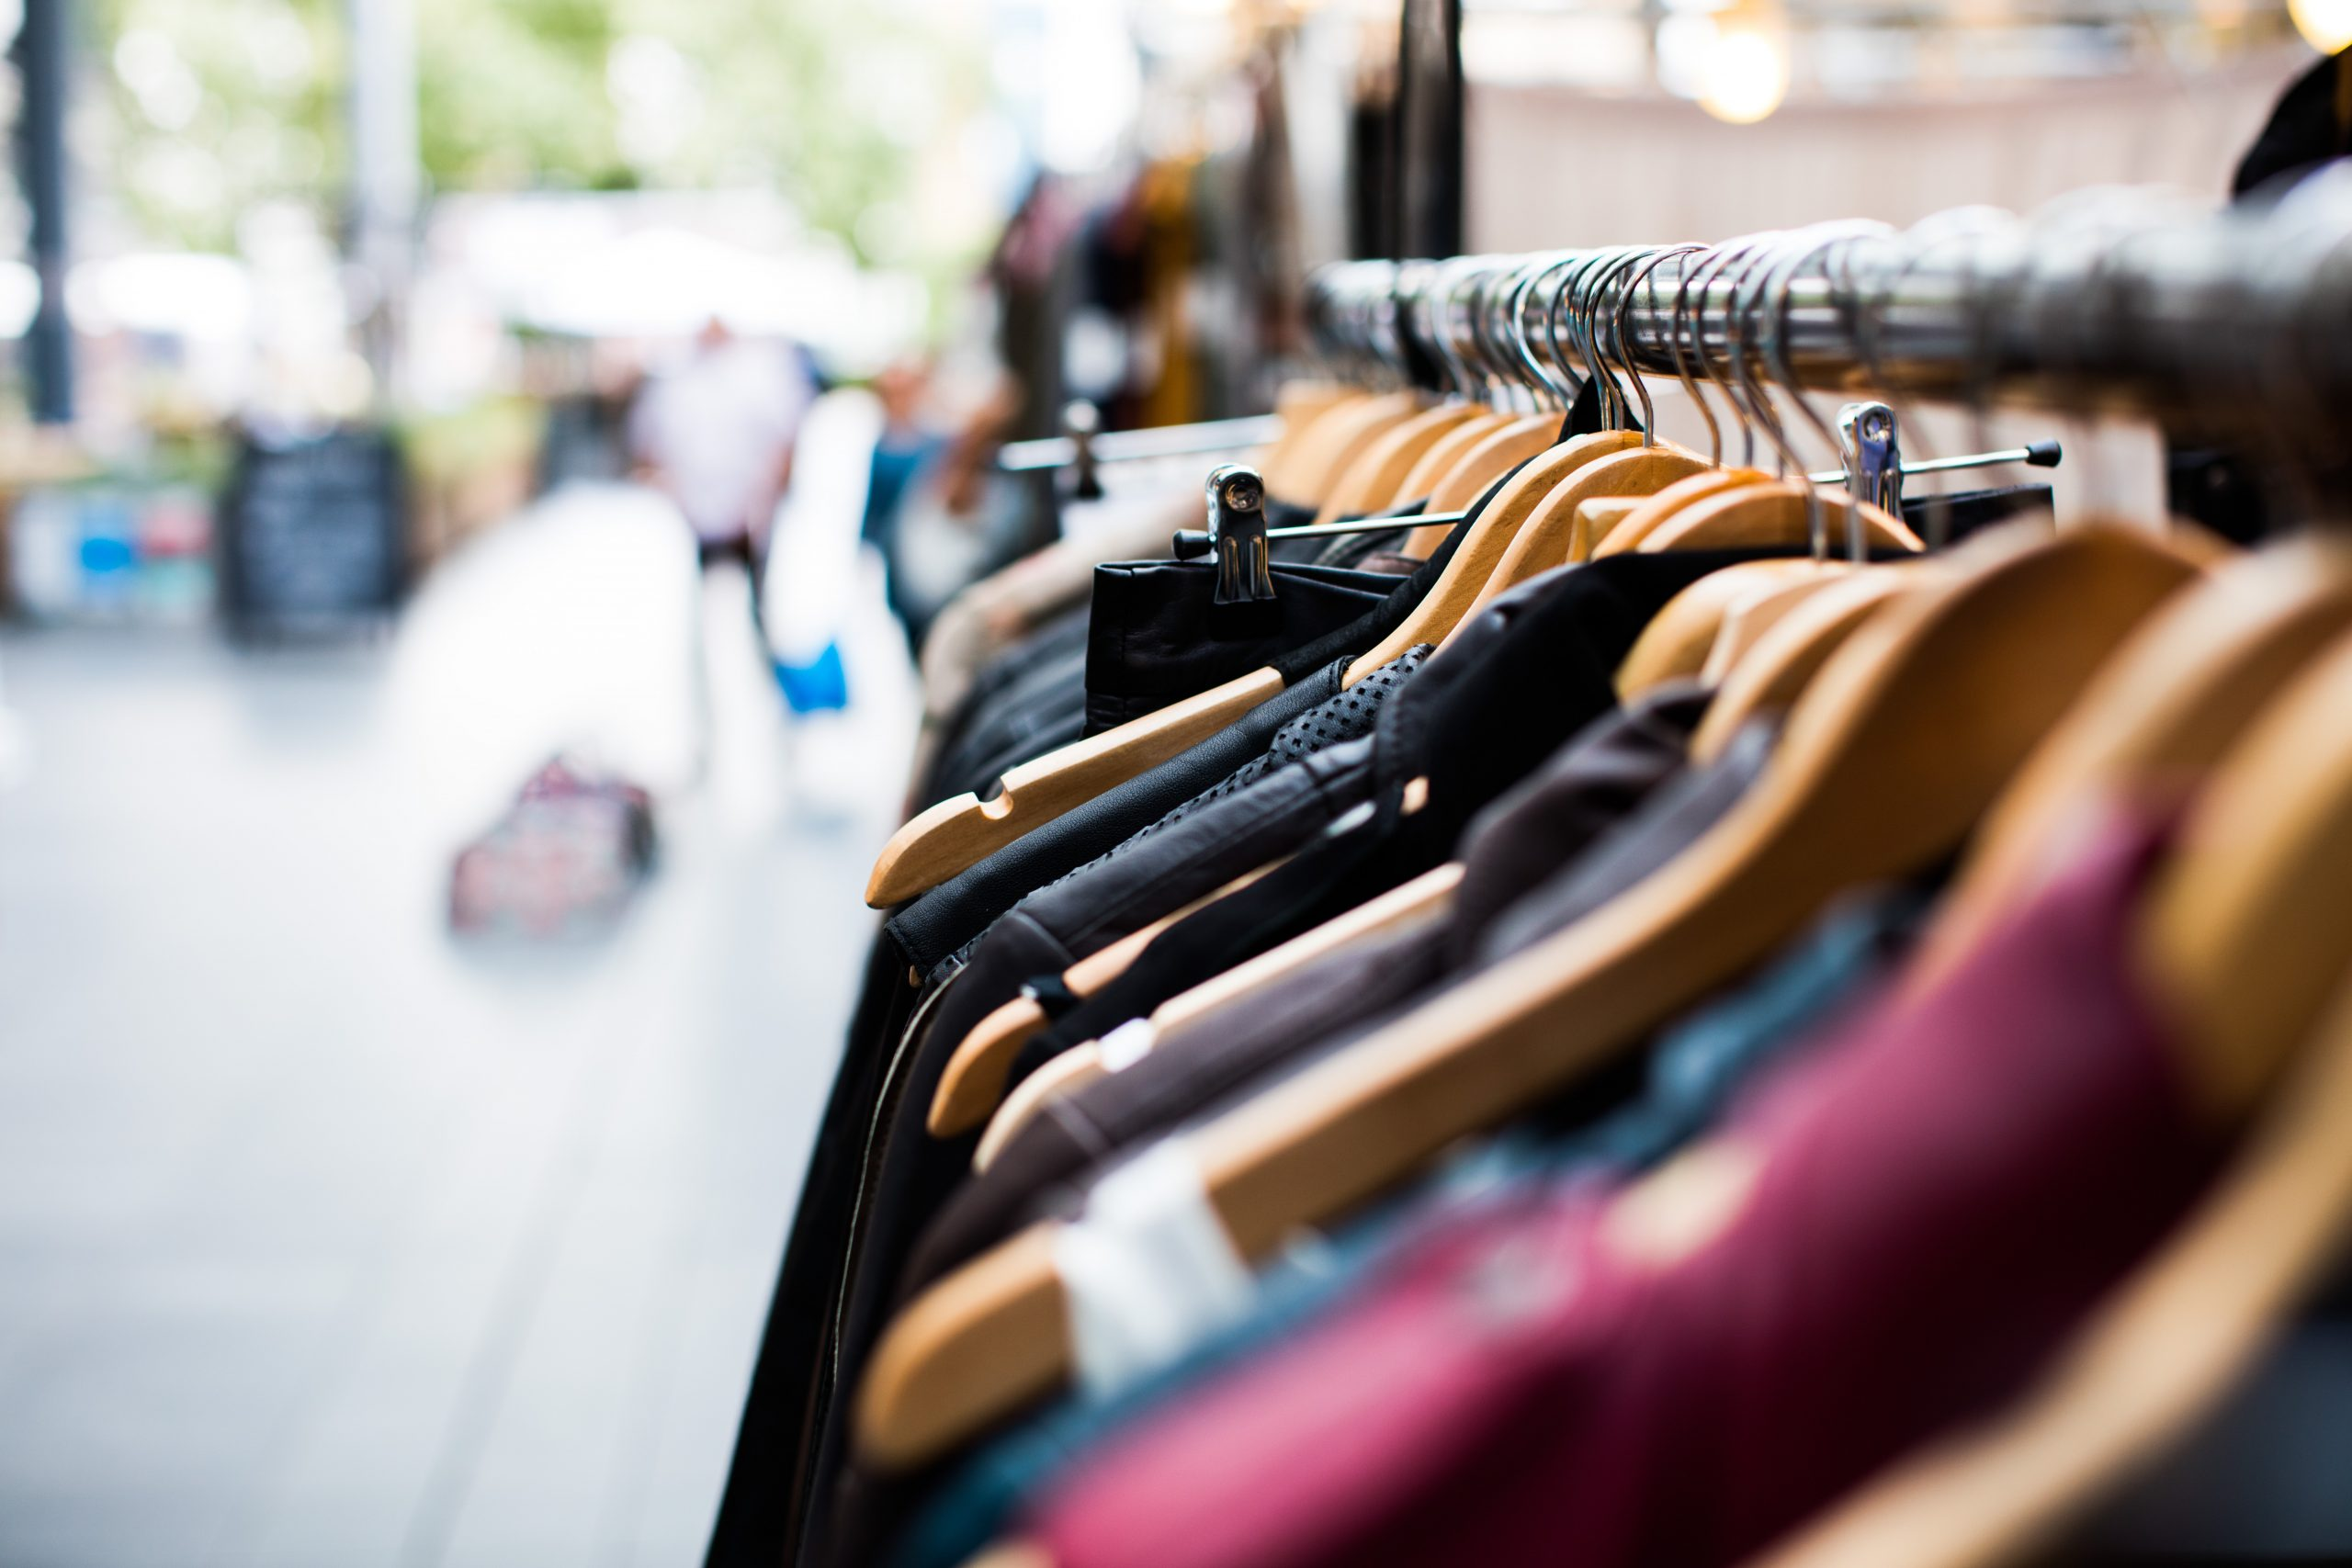 Clothes rail in modern store. Photo by Artificial Photography on Unsplash